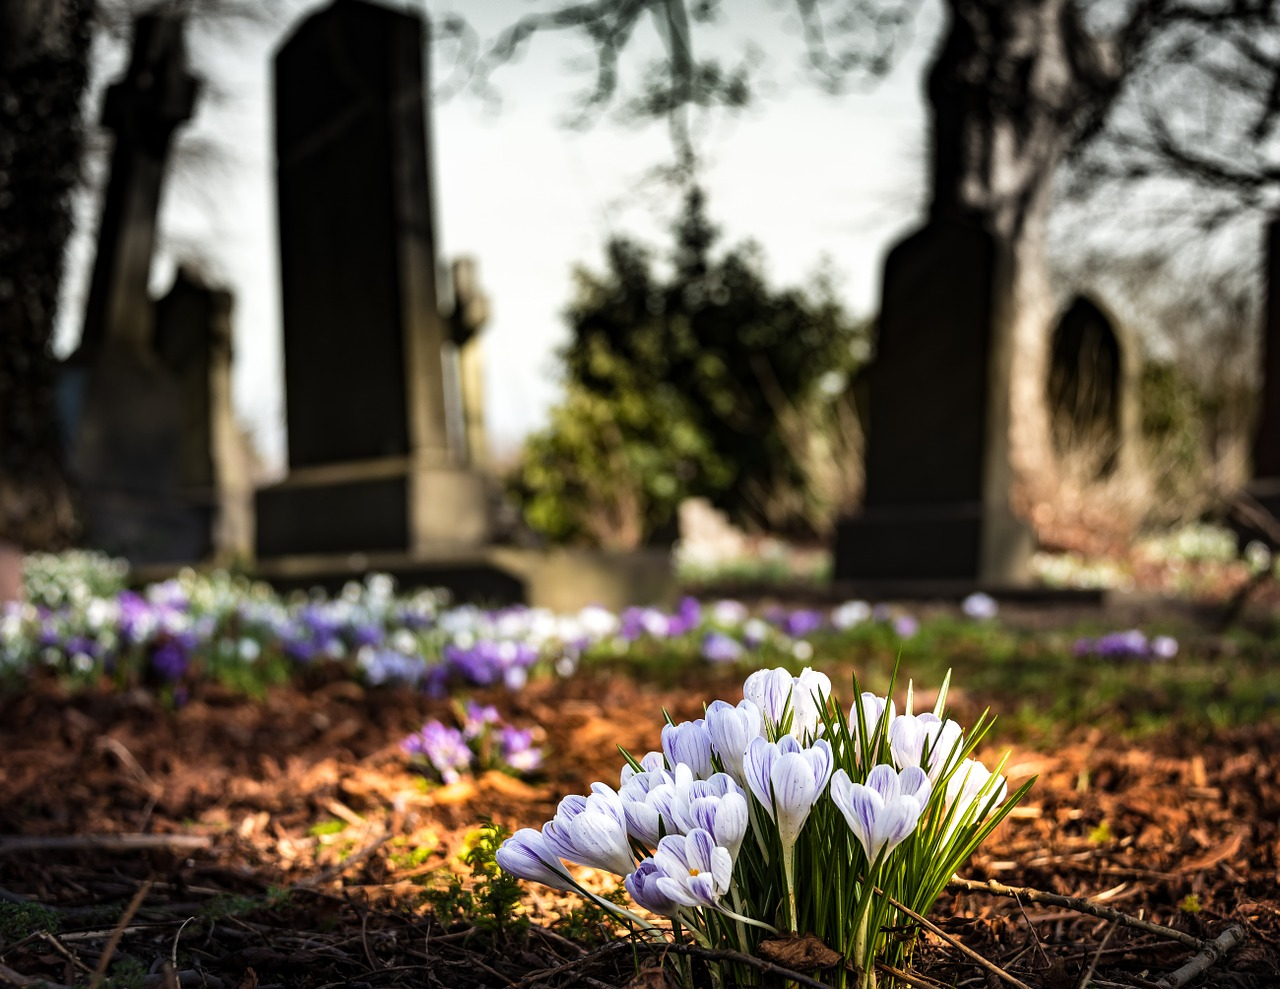 image of a gravestone with flowers